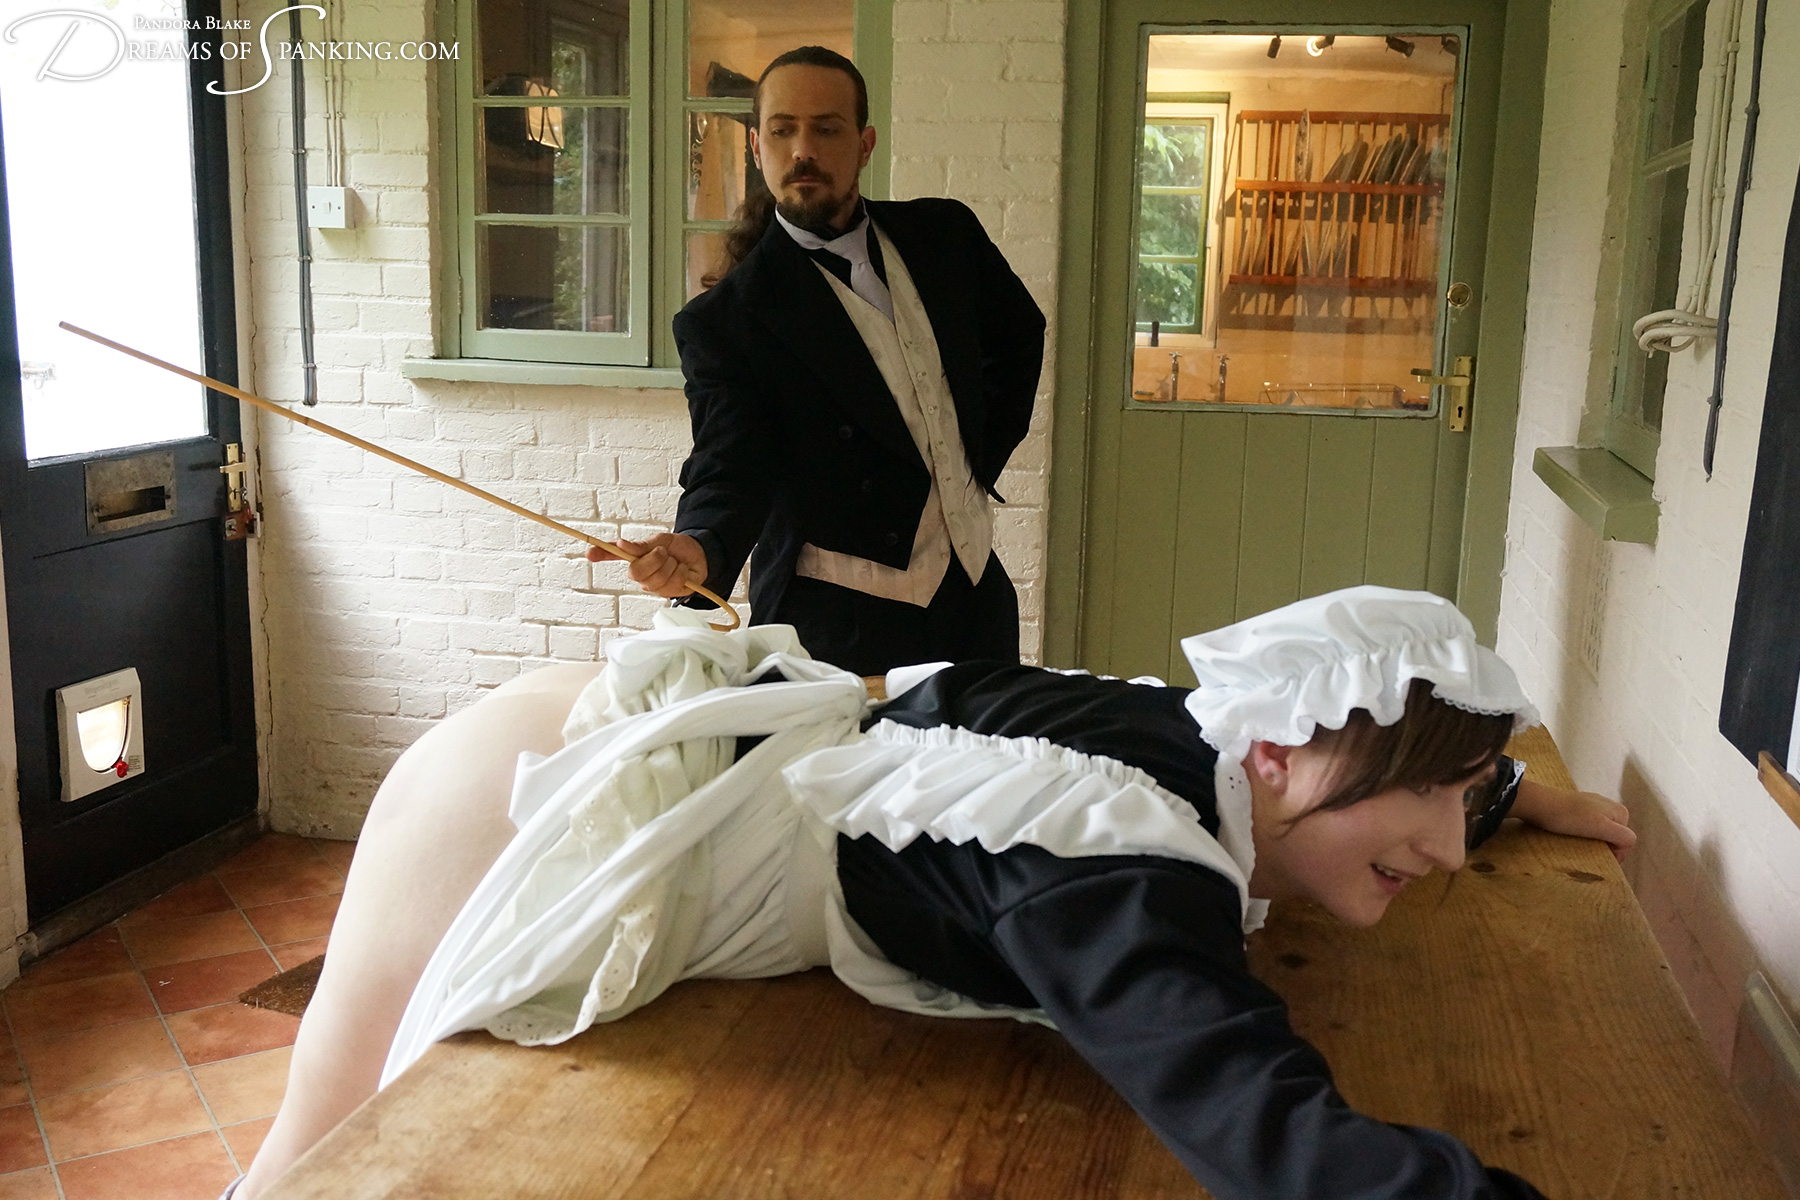 Whipped Victorian maid Pandora Blake takes a 50-stroke severe caning at Dreams of Spanking